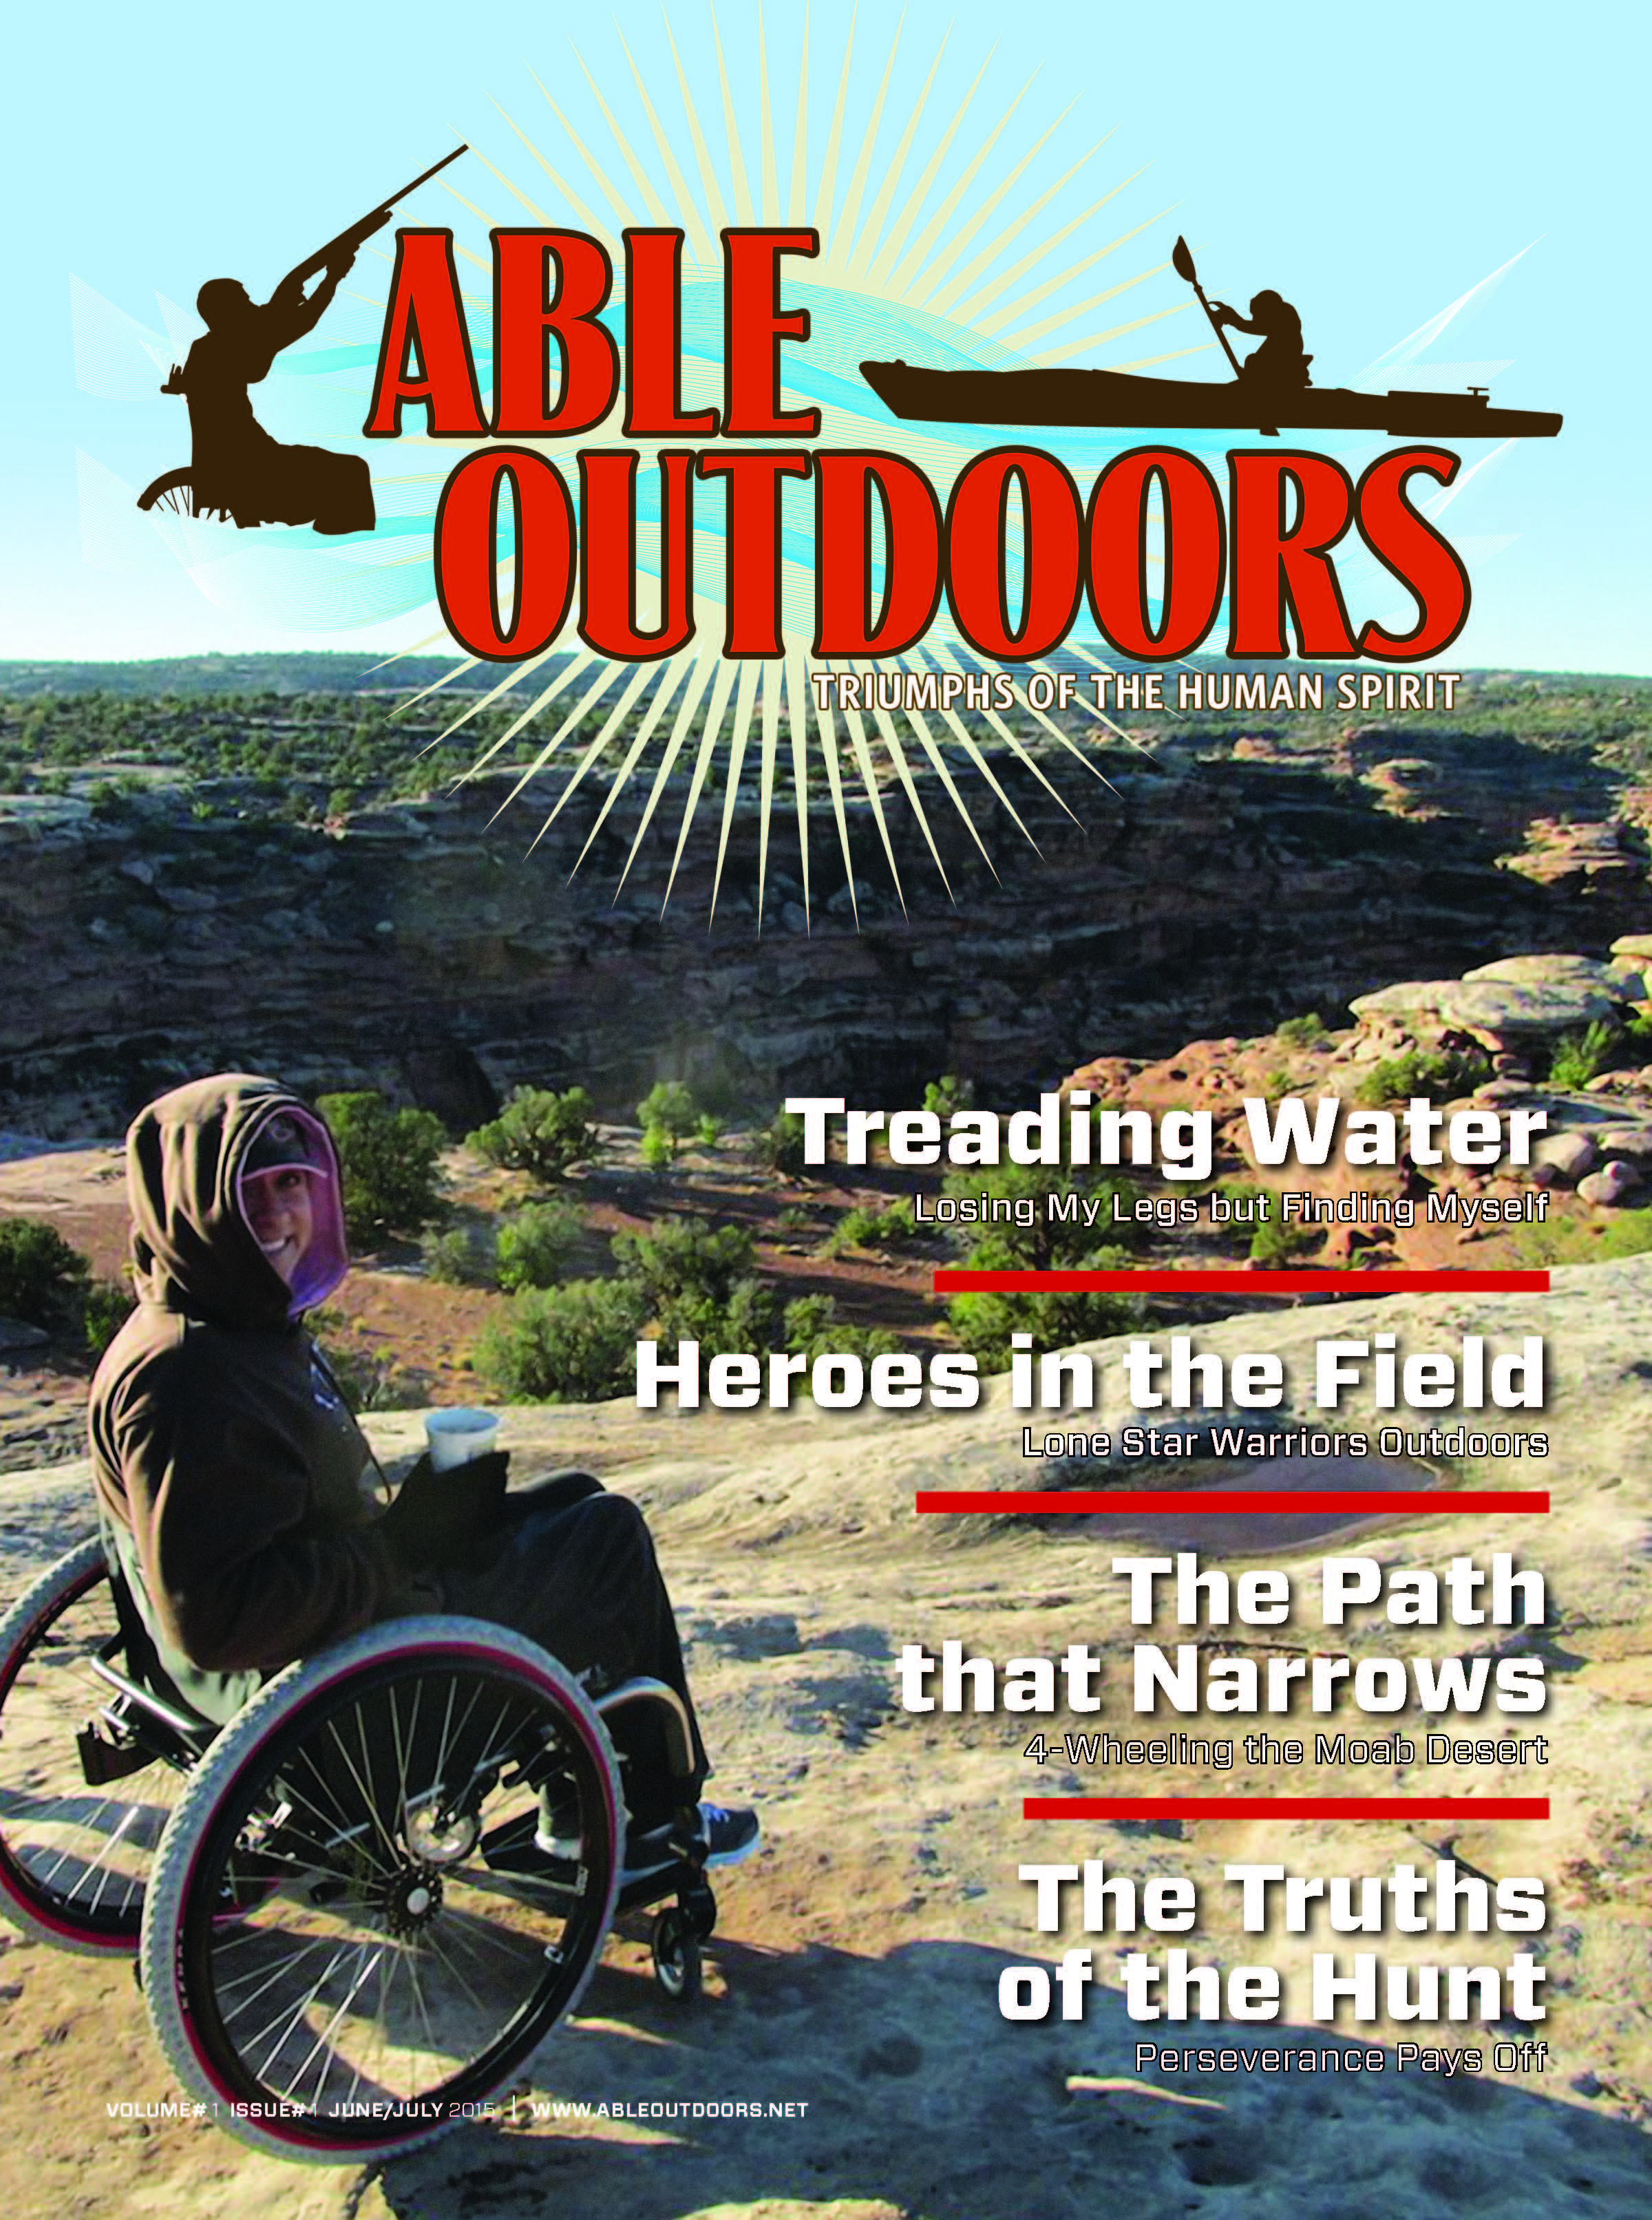 Able Outdoors